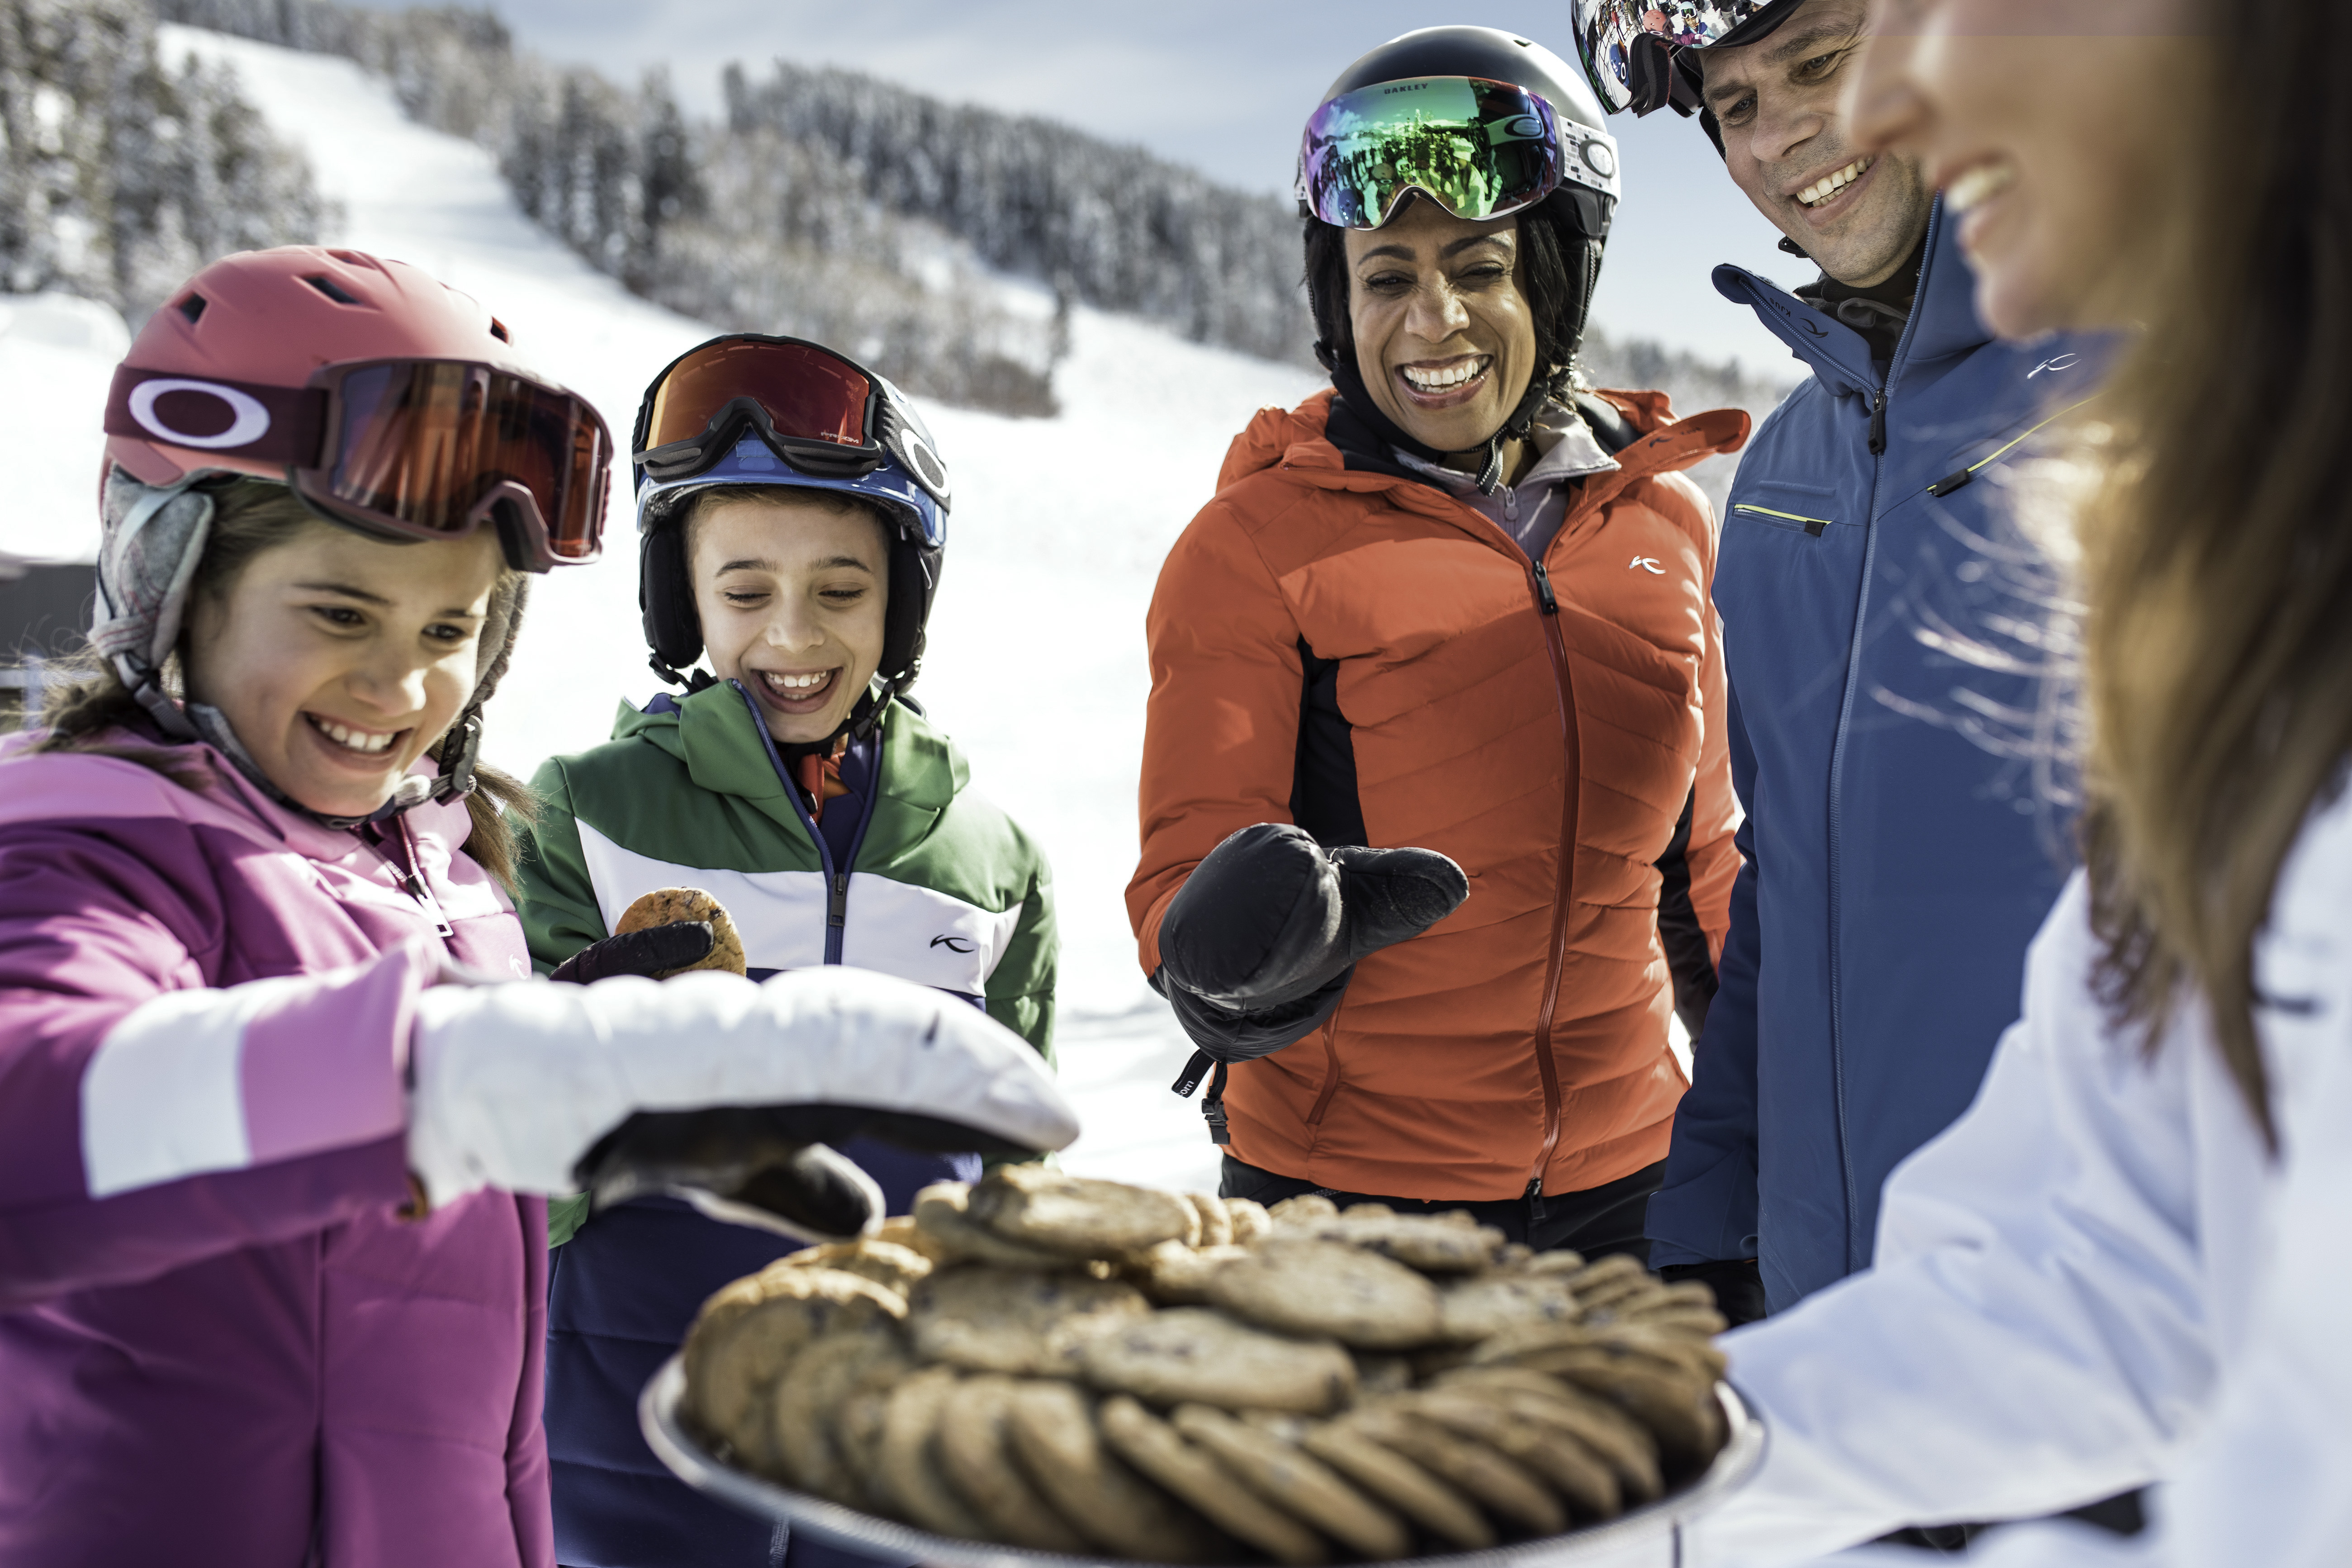 Family of skiers eating cookies in Beaver Creek, one of the best family ski resorts in Colorado